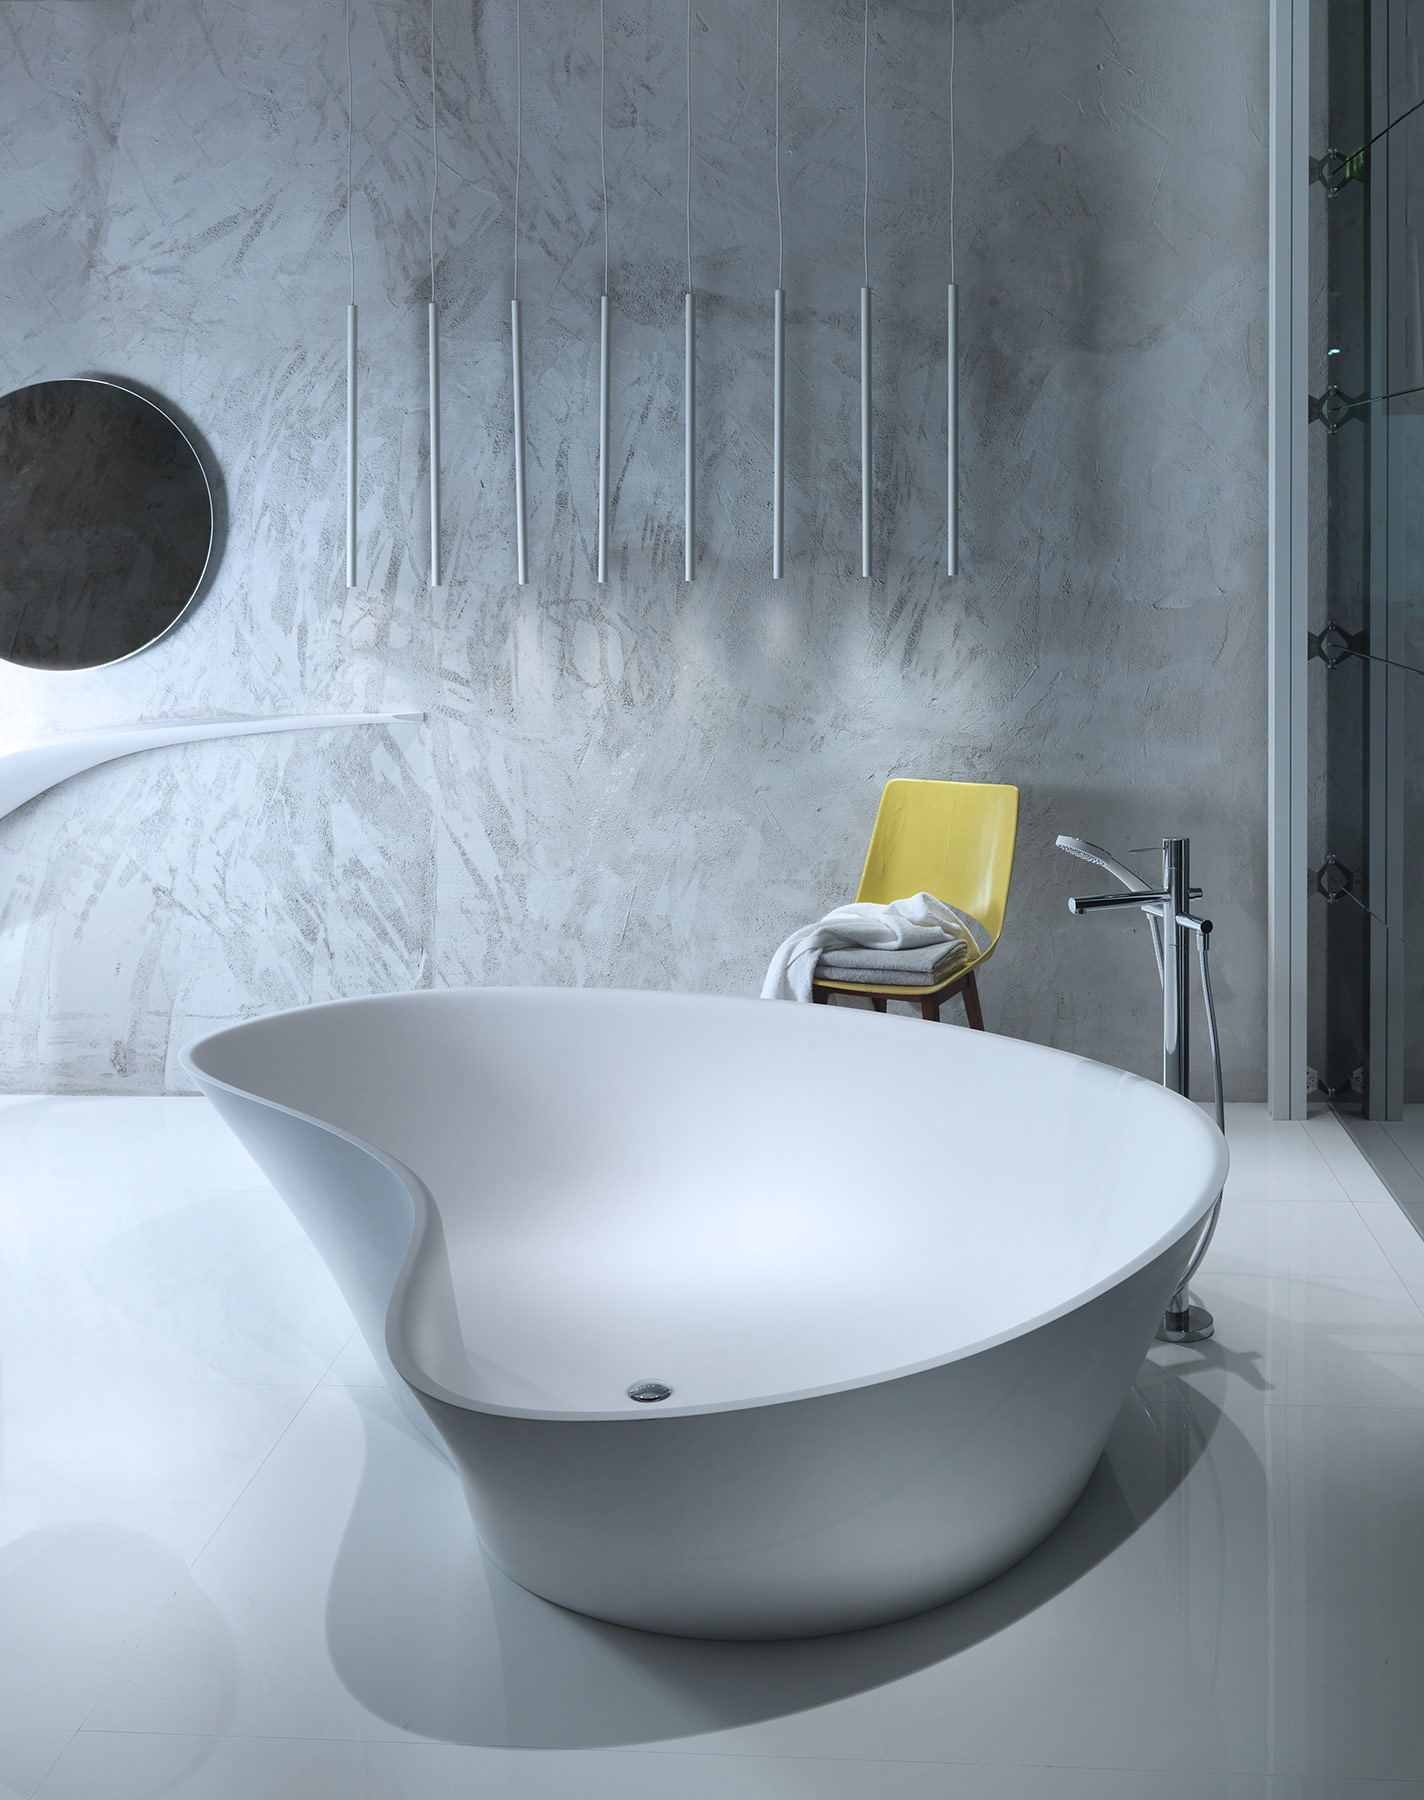 Modern Level 45 Freestanding Bathtub